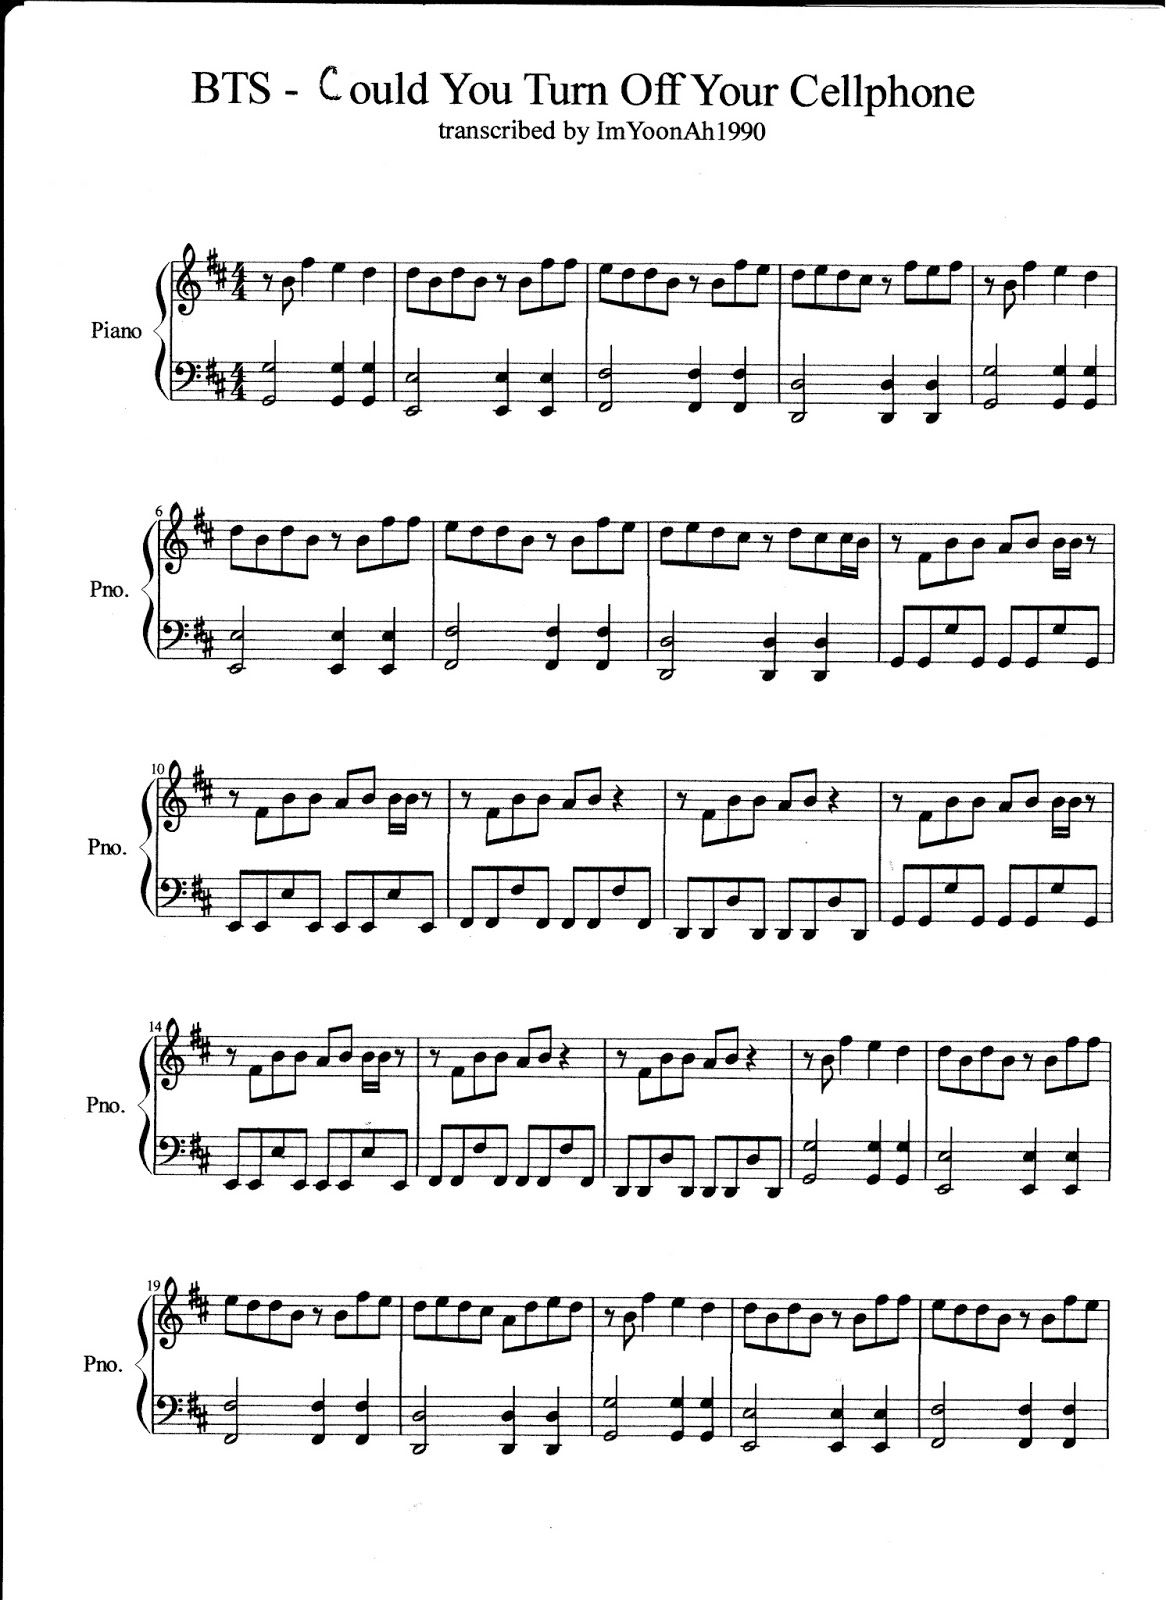 Teenagegirlemmaspot just one day pinterest pianos bts could you turn off your cellphone piano cover piano sheet sorry for the mistakes it was made on entertainment hexwebz Gallery